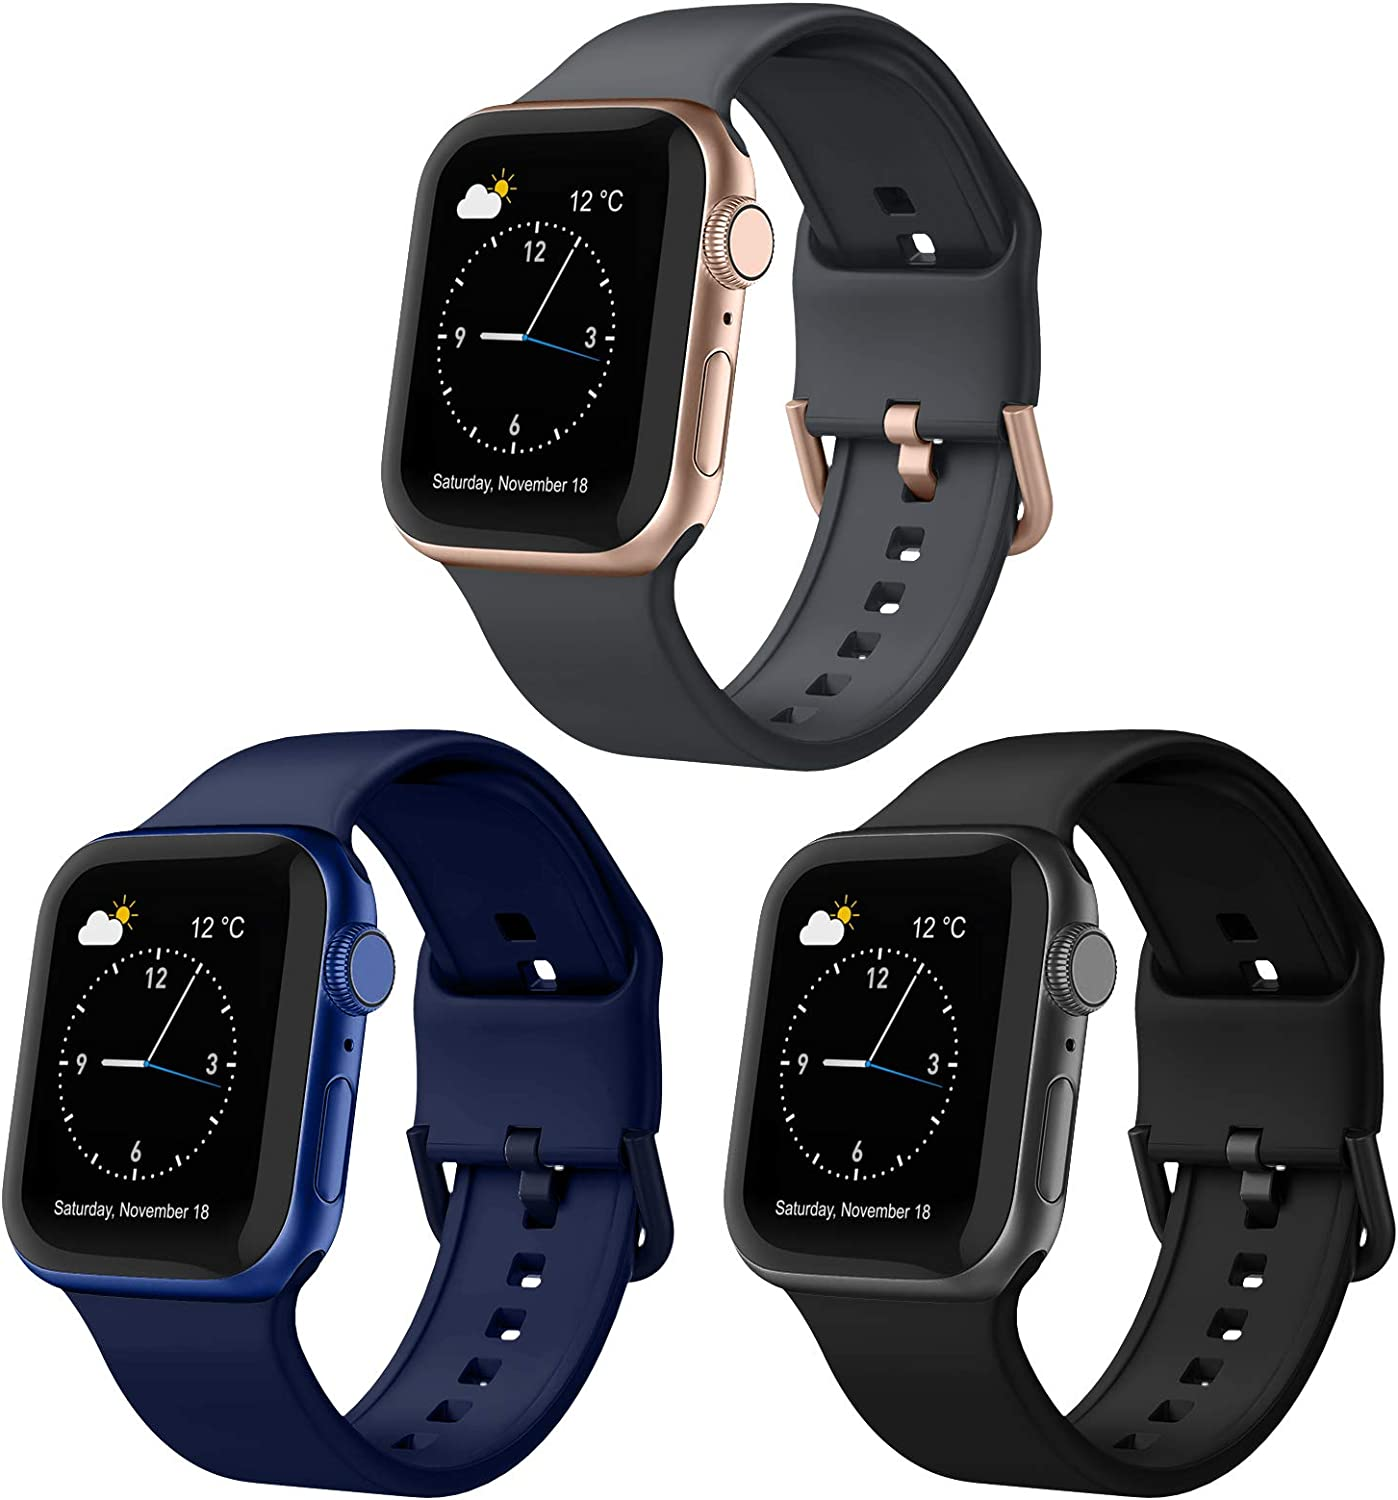 Adepoy 3 Pack Compatible with Apple Watch Bands 40mm 38mm, Soft Silicone Sport Wristbands Replacement Strap with Classic Clasp for iWatch Series SE 6 5 4 3 2 1 for Women Men, 38mm/40mm